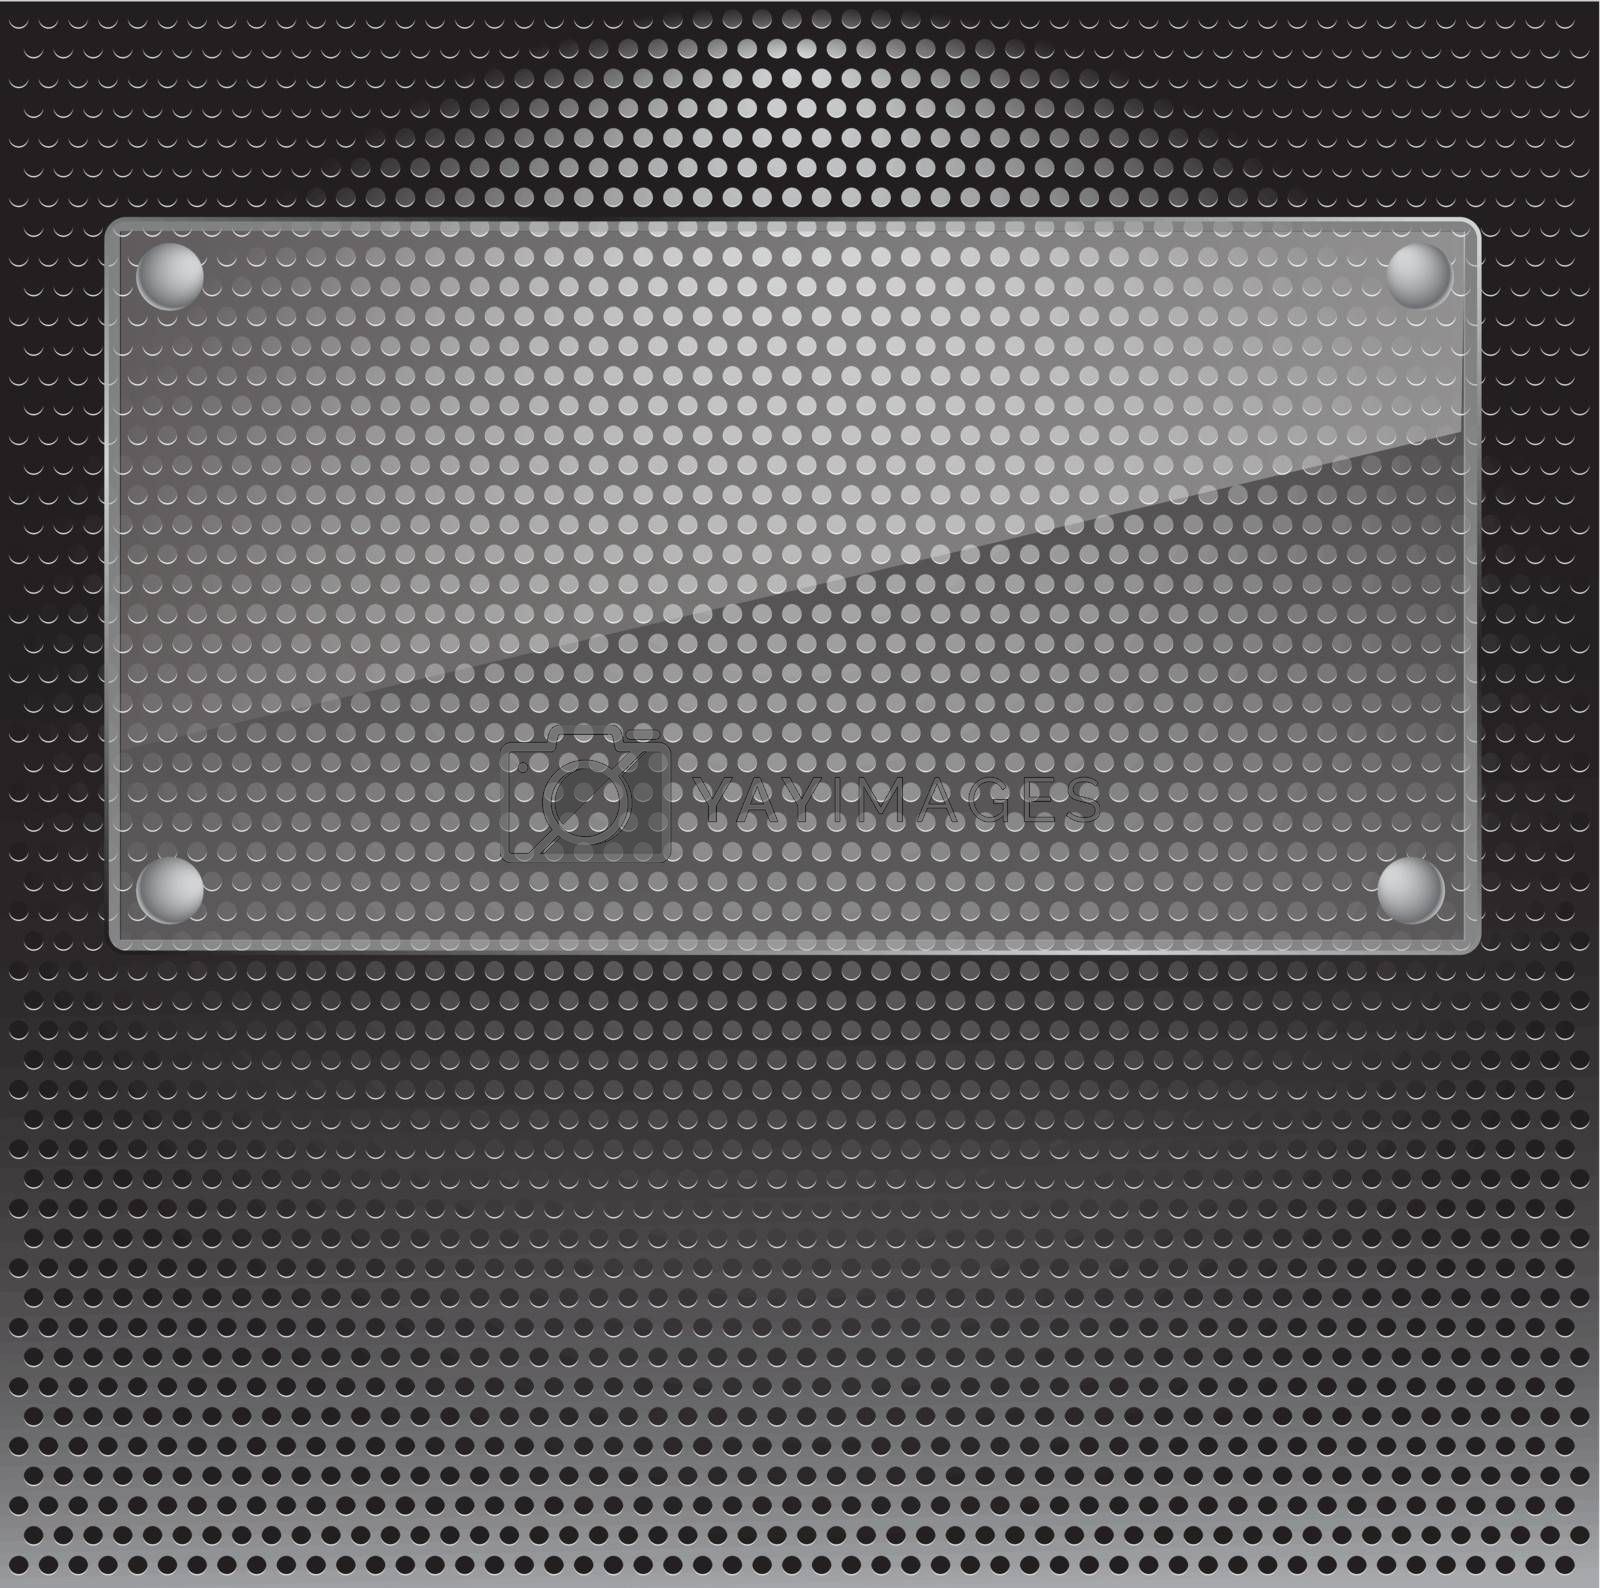 Realistic vector speaker grill background with glass